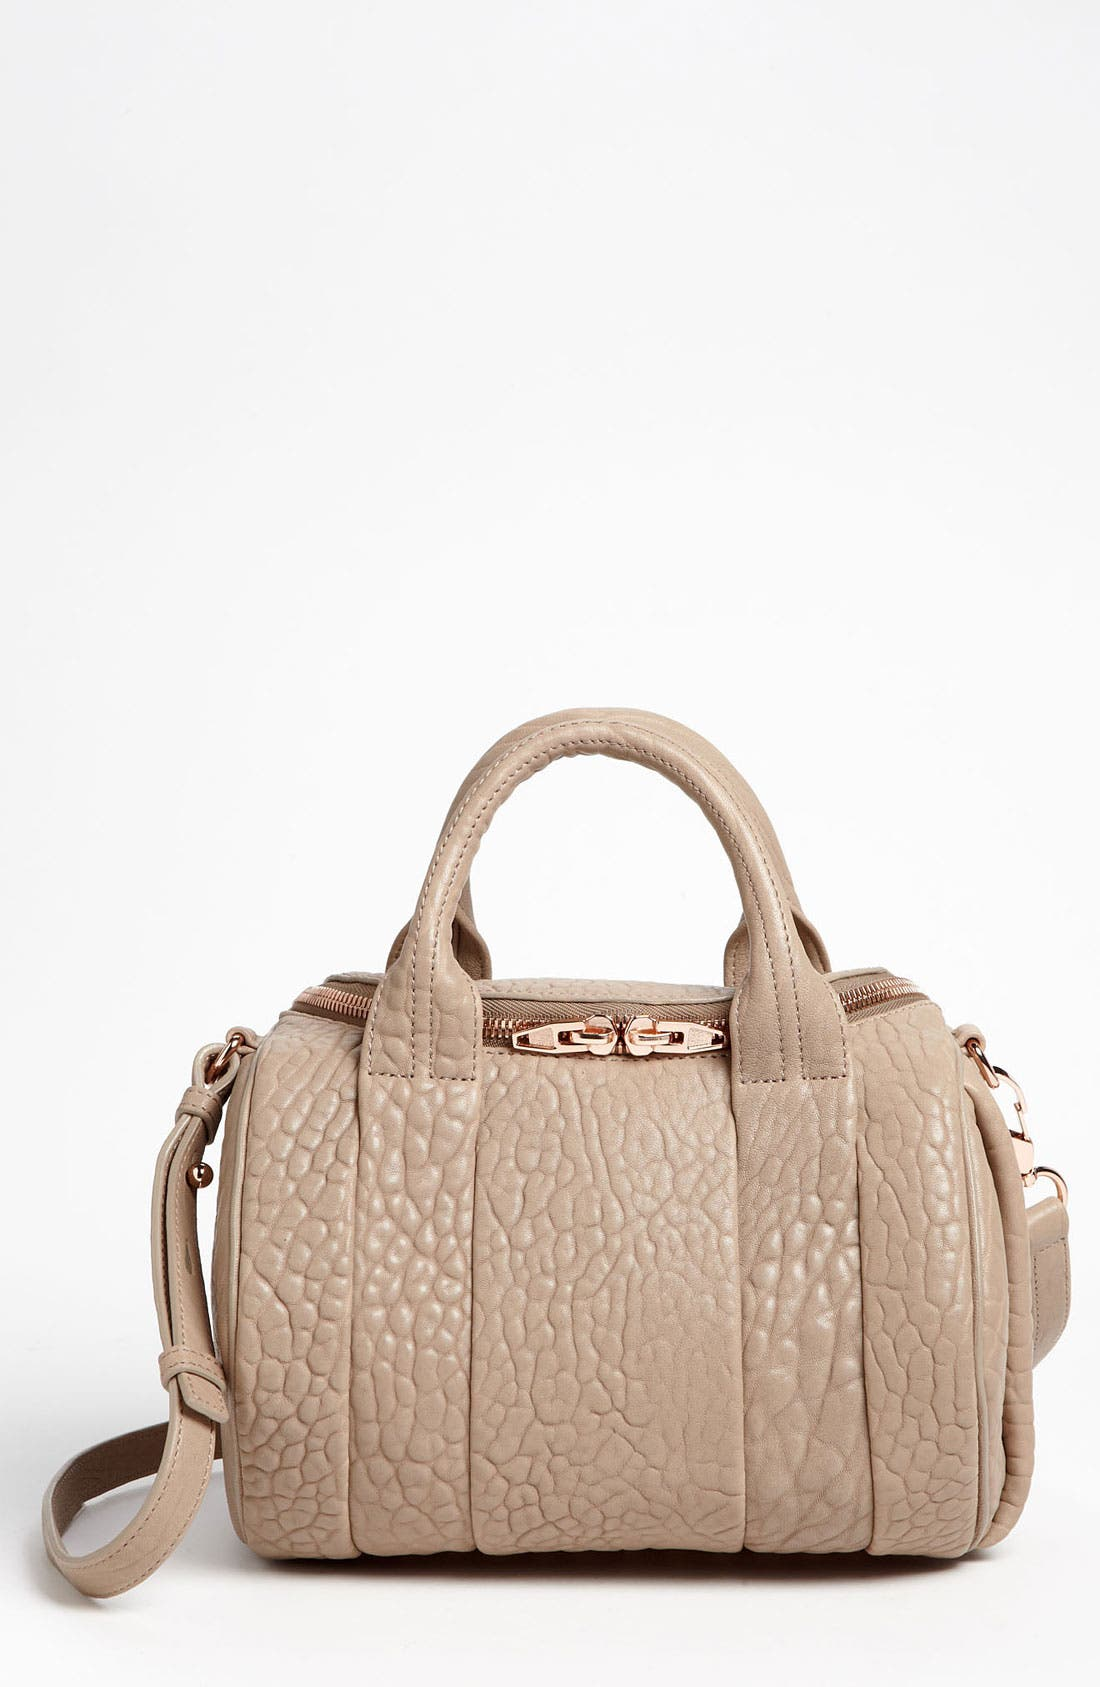 Alternate Image 1 Selected - Alexander Wang 'Rockie - Rosegold' Leather Shoulder Satchel